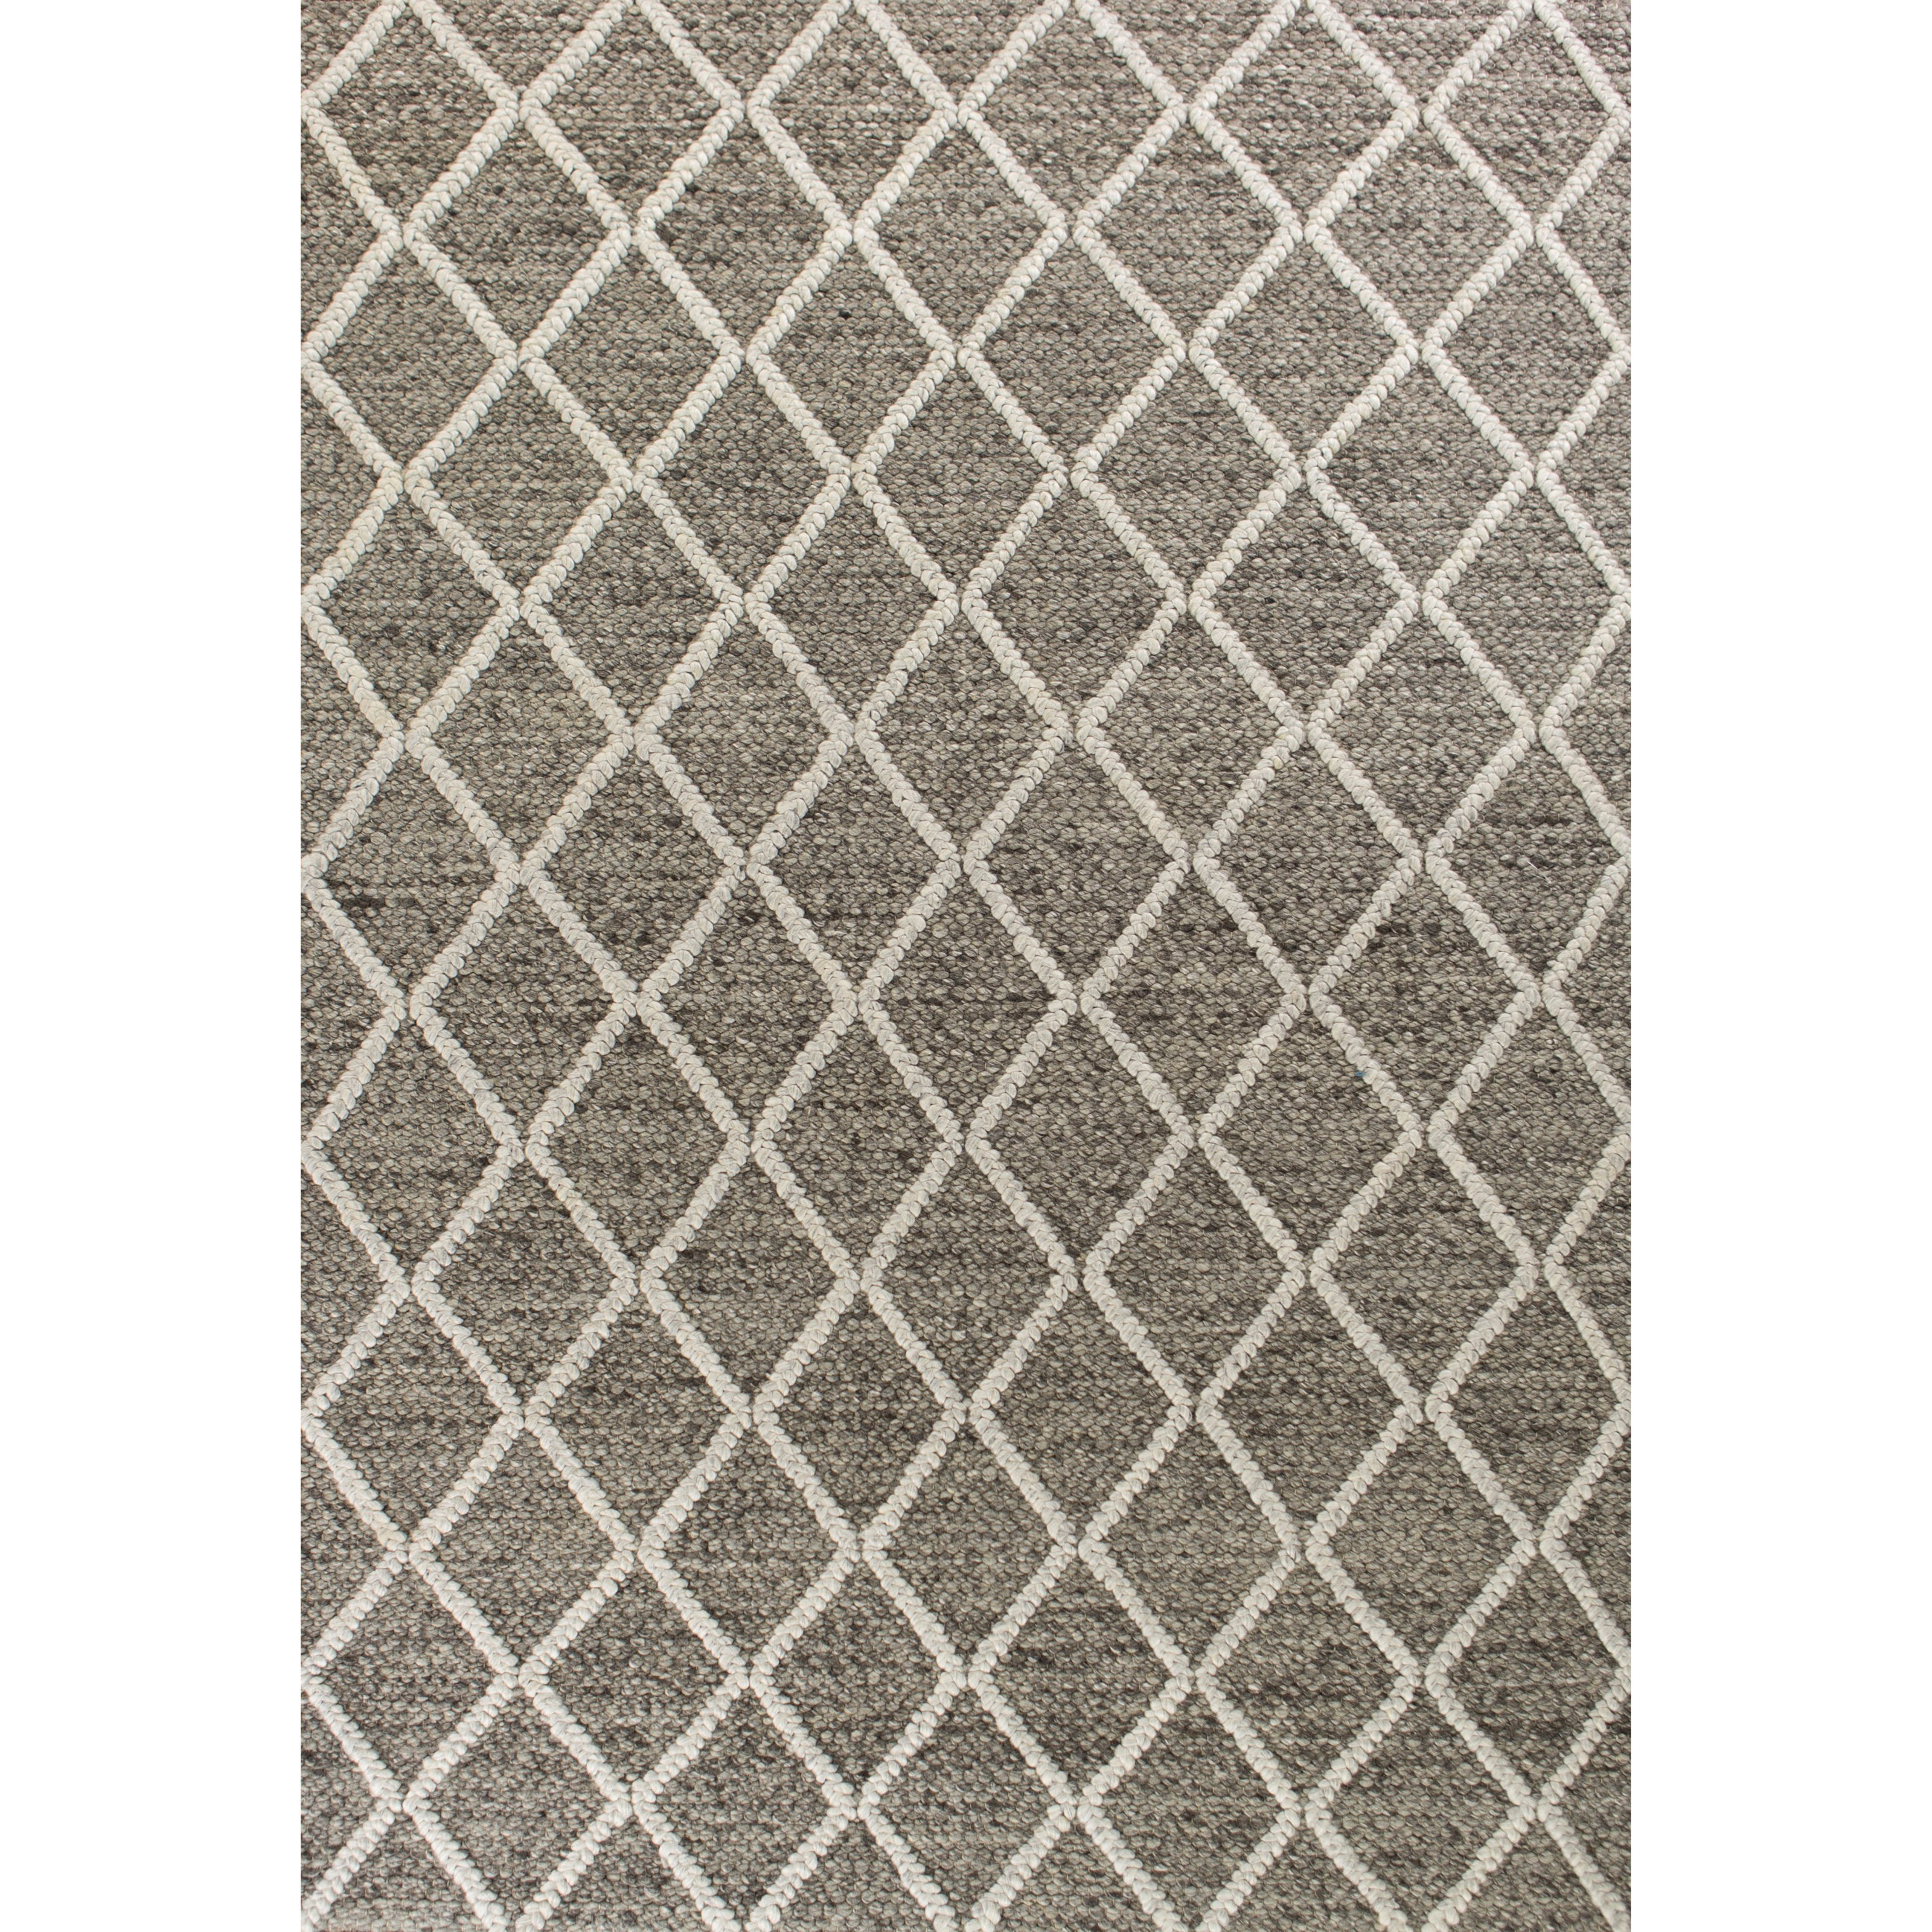 Cortico 7' X 5' Area Rug by Kas at Zak's Home